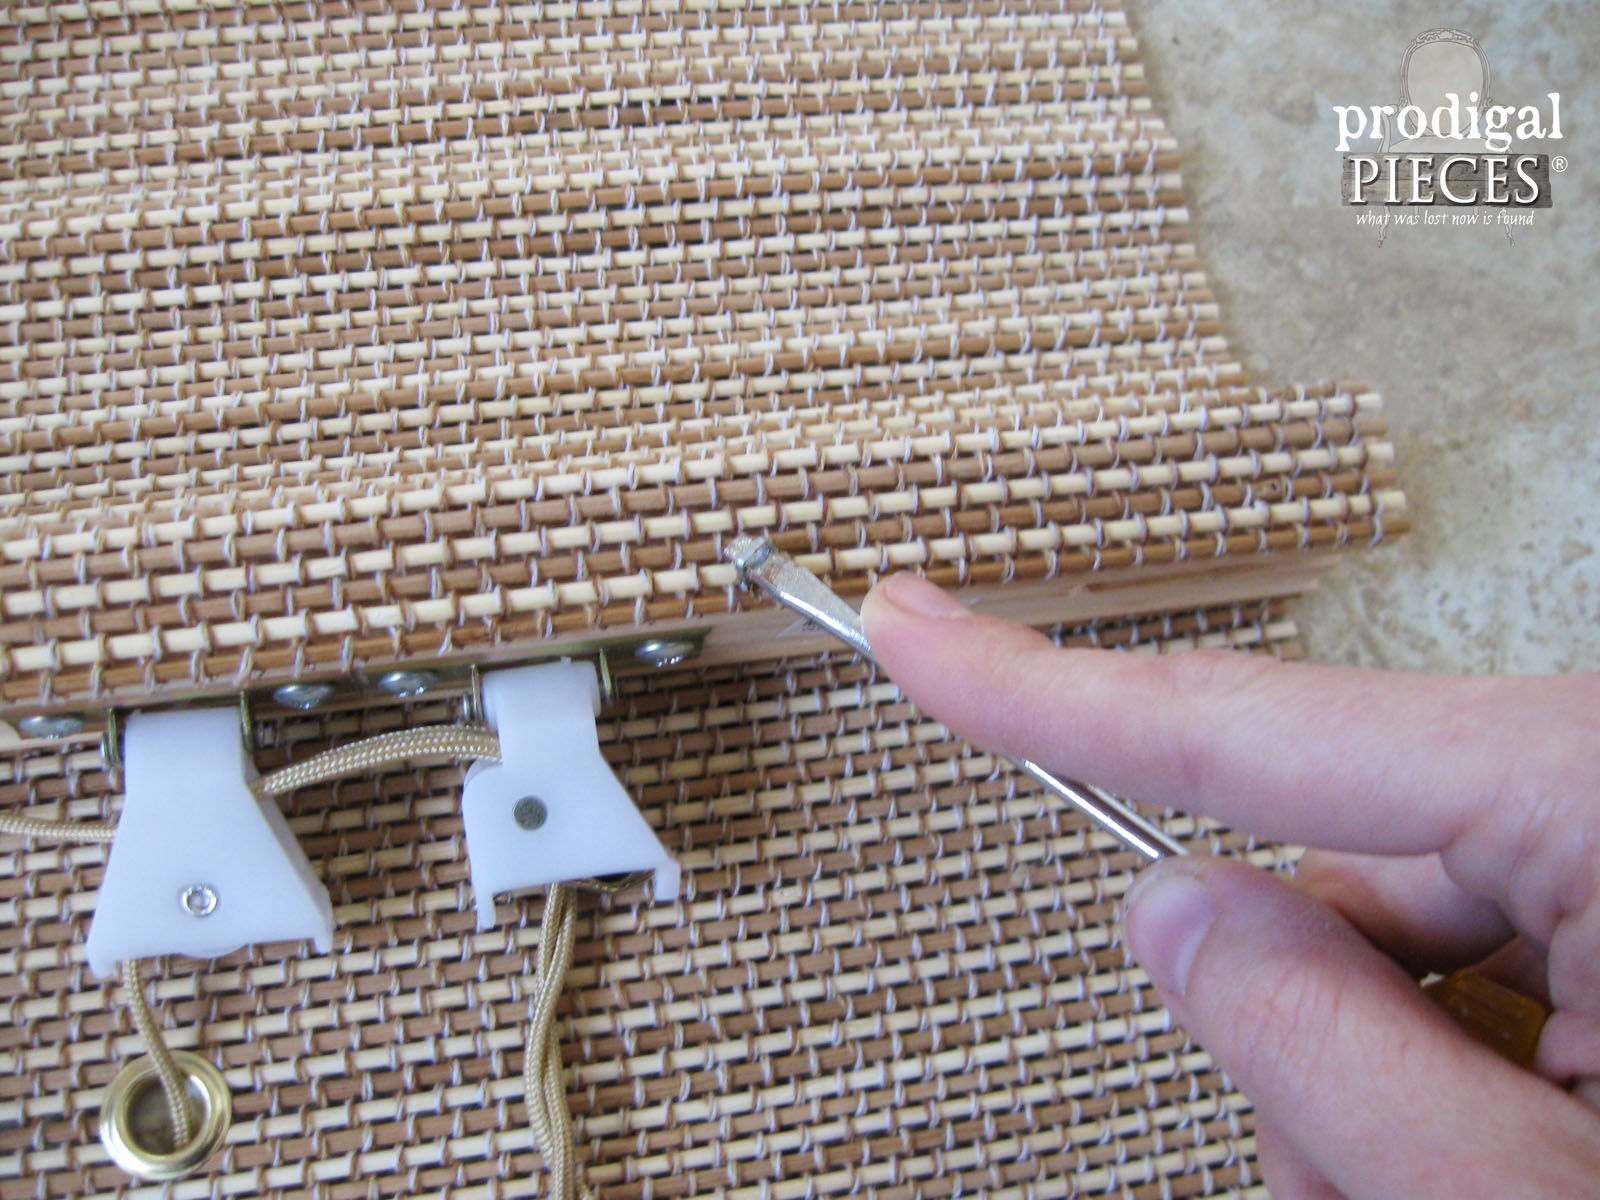 Removing Shade Staples for Window Treatment | Prodigal Pieces | www.prodigalpieces.com